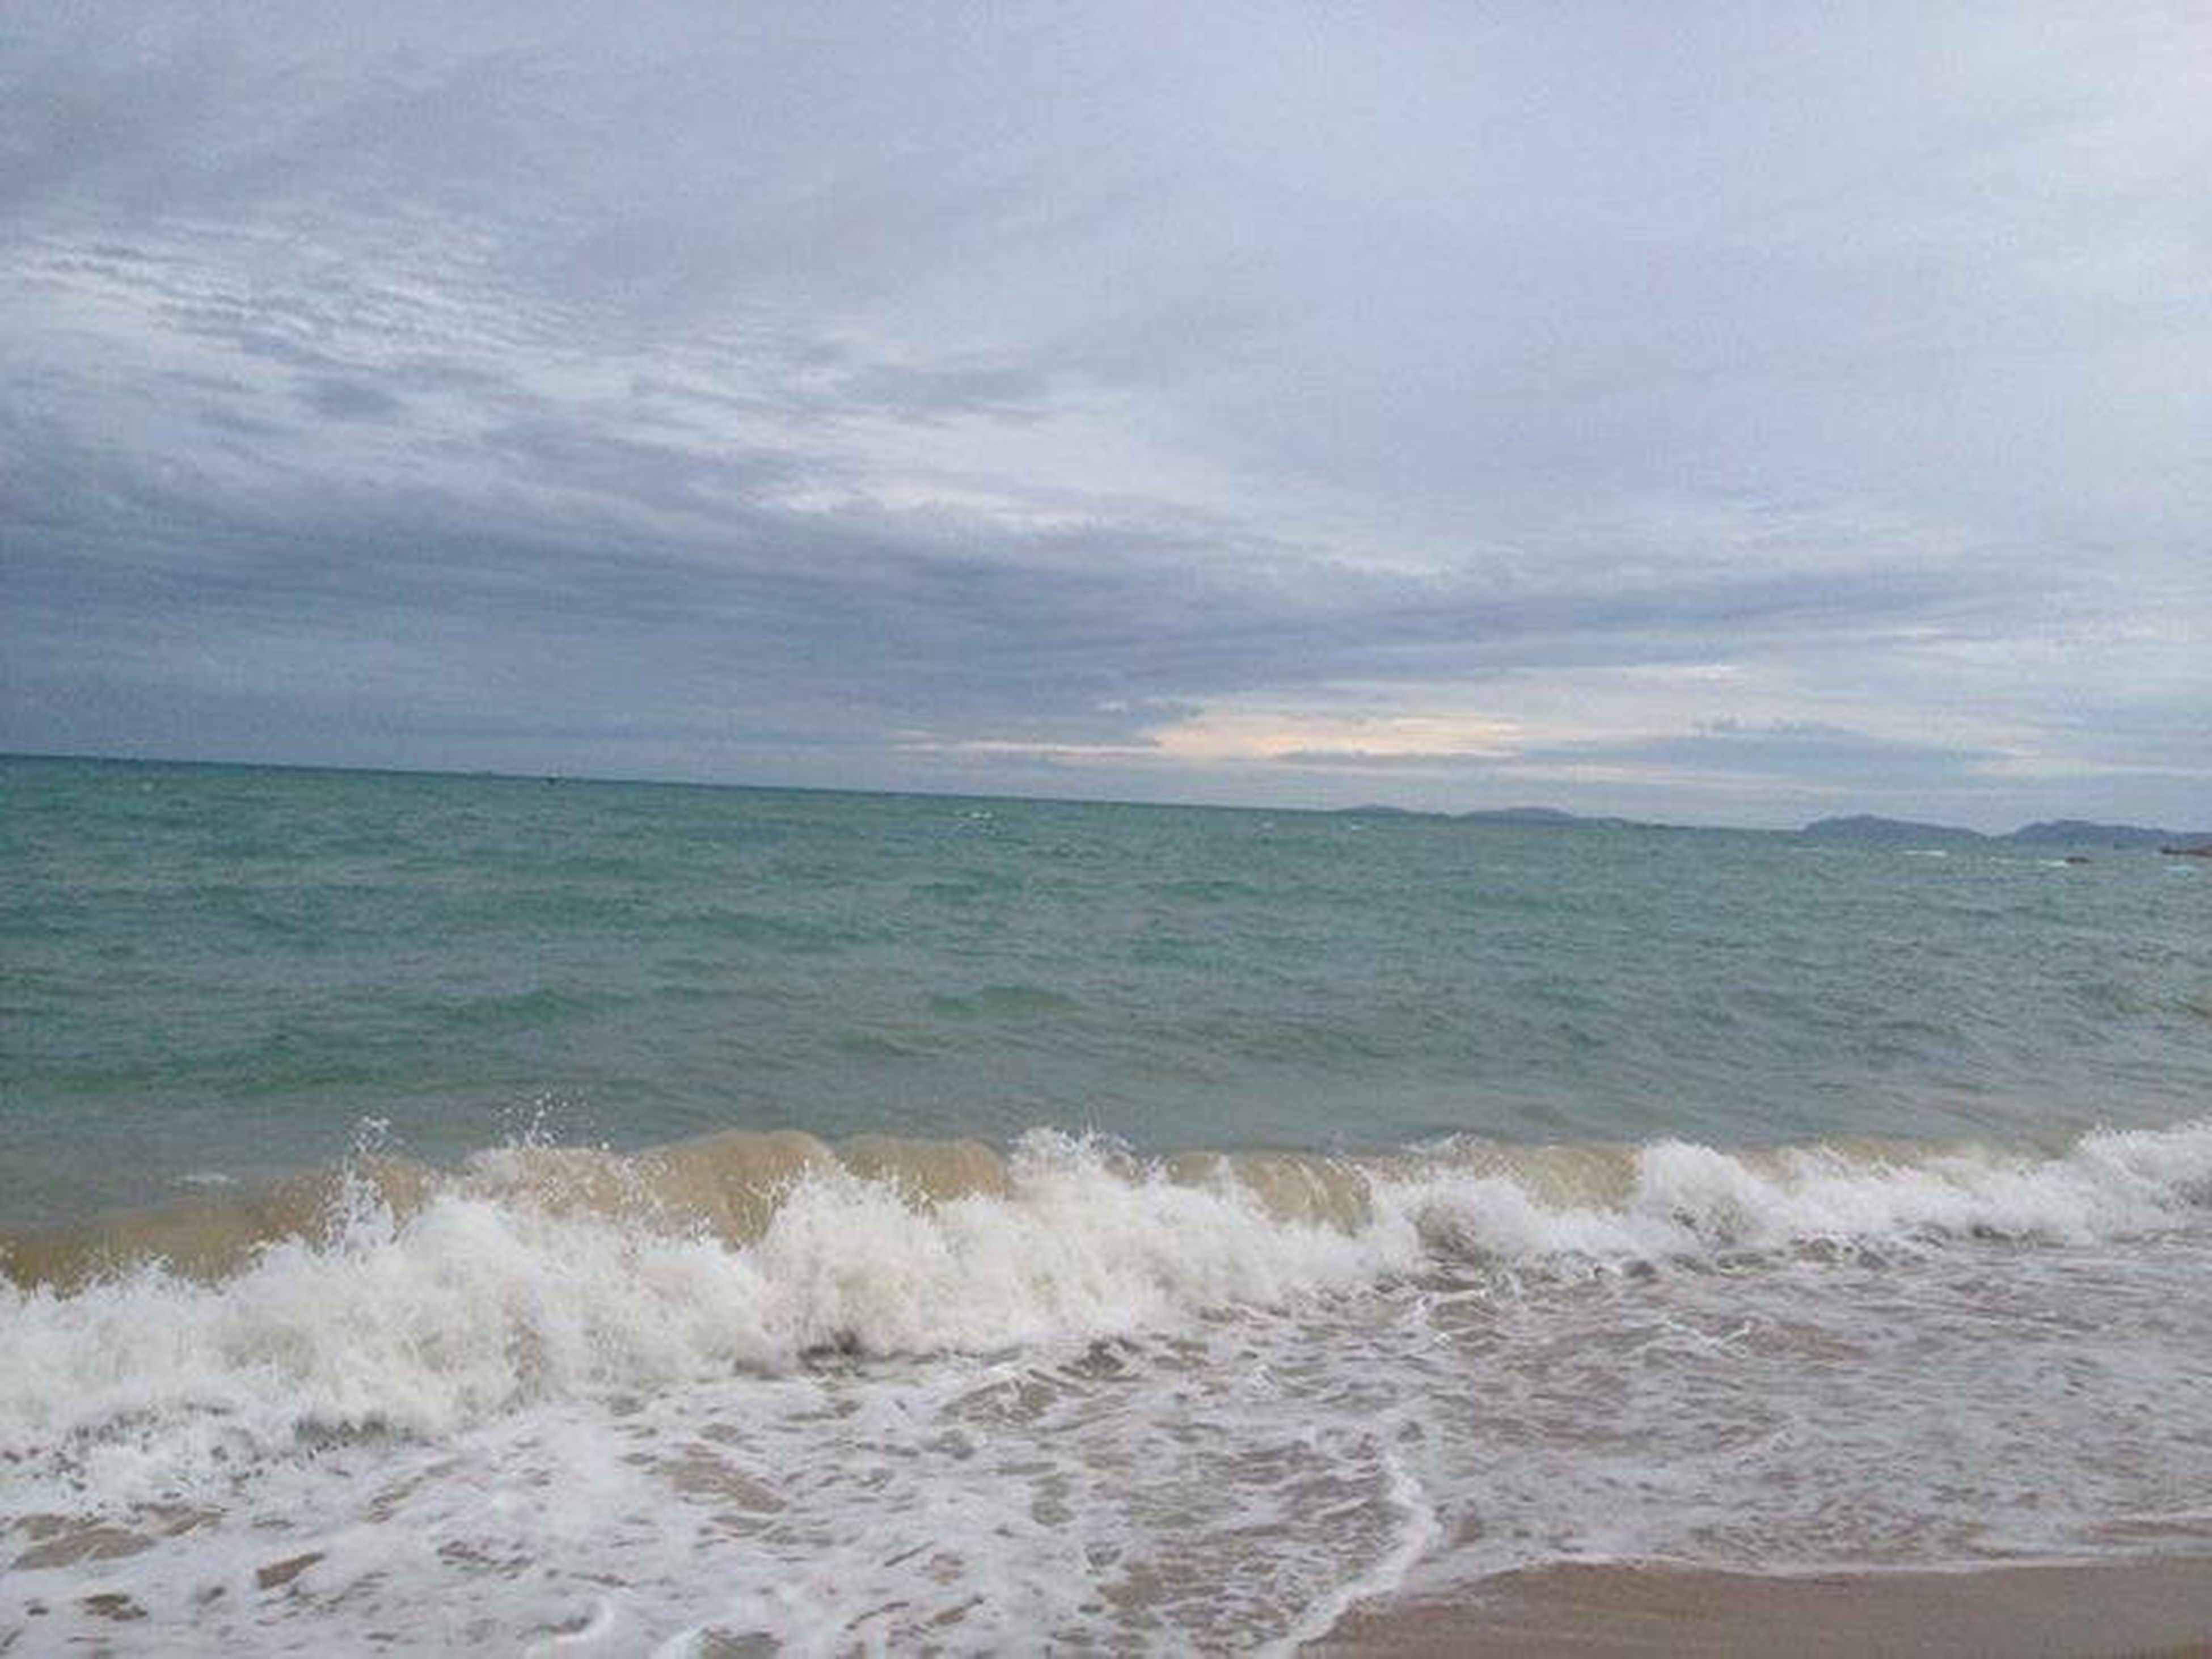 sea, beauty in nature, horizon over water, scenics, beach, sky, cloud - sky, nature, water, no people, wave, outdoors, day